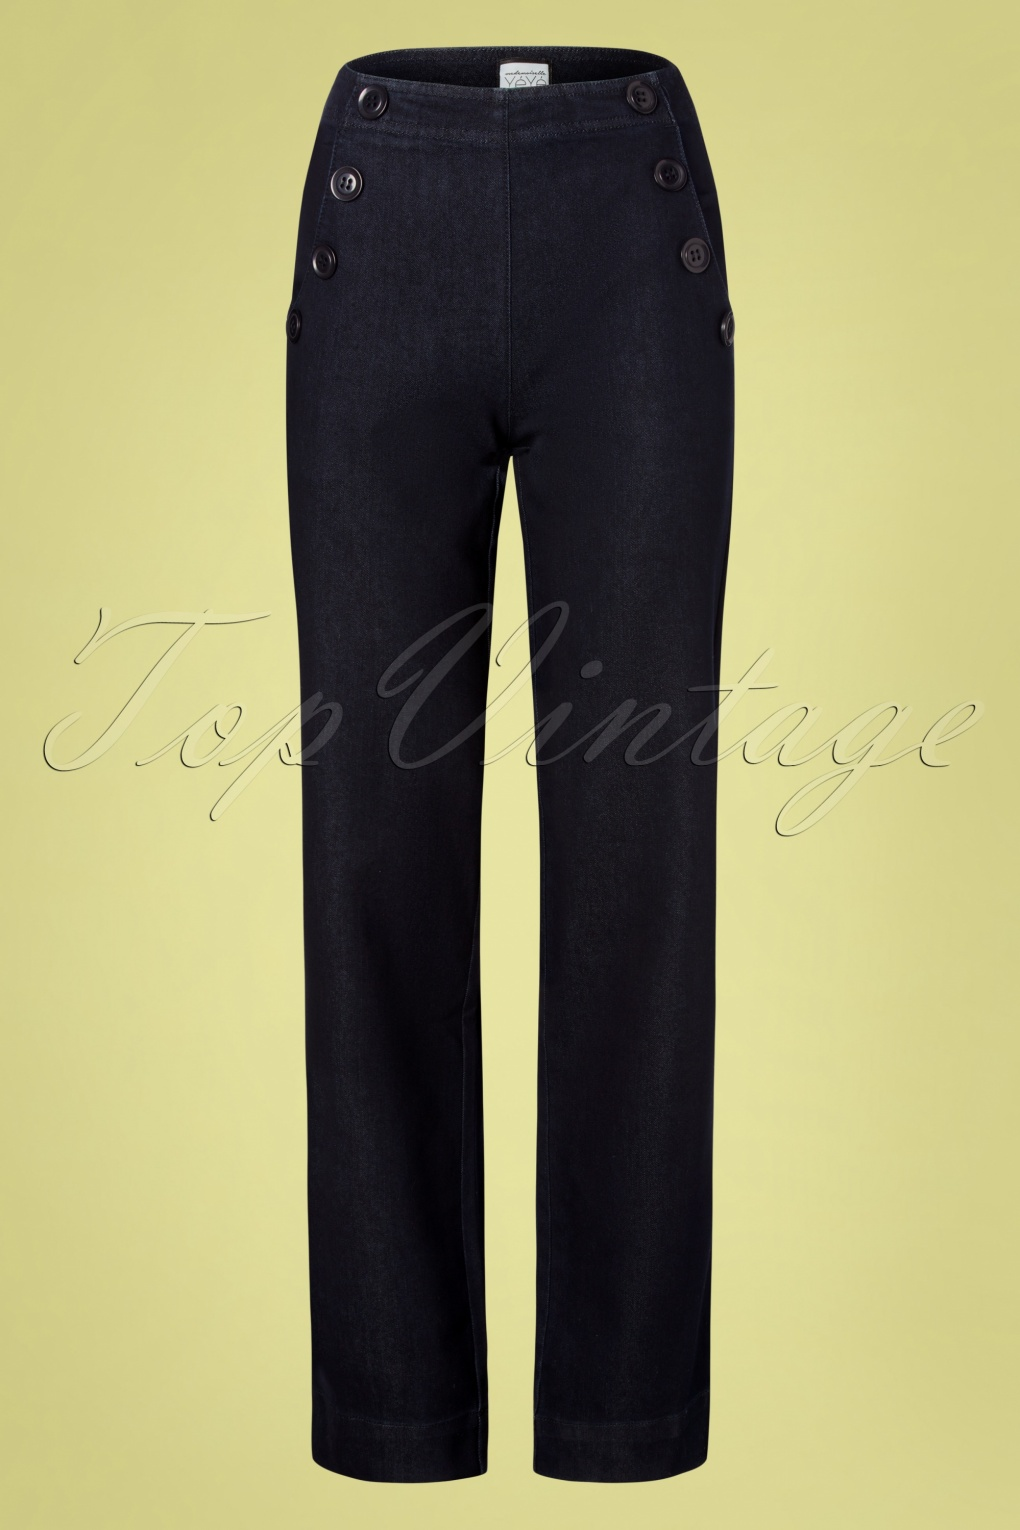 Vintage High Waisted Trousers, Sailor Pants, Jeans 60s Walk On By Trousers in Denim Blue £82.86 AT vintagedancer.com